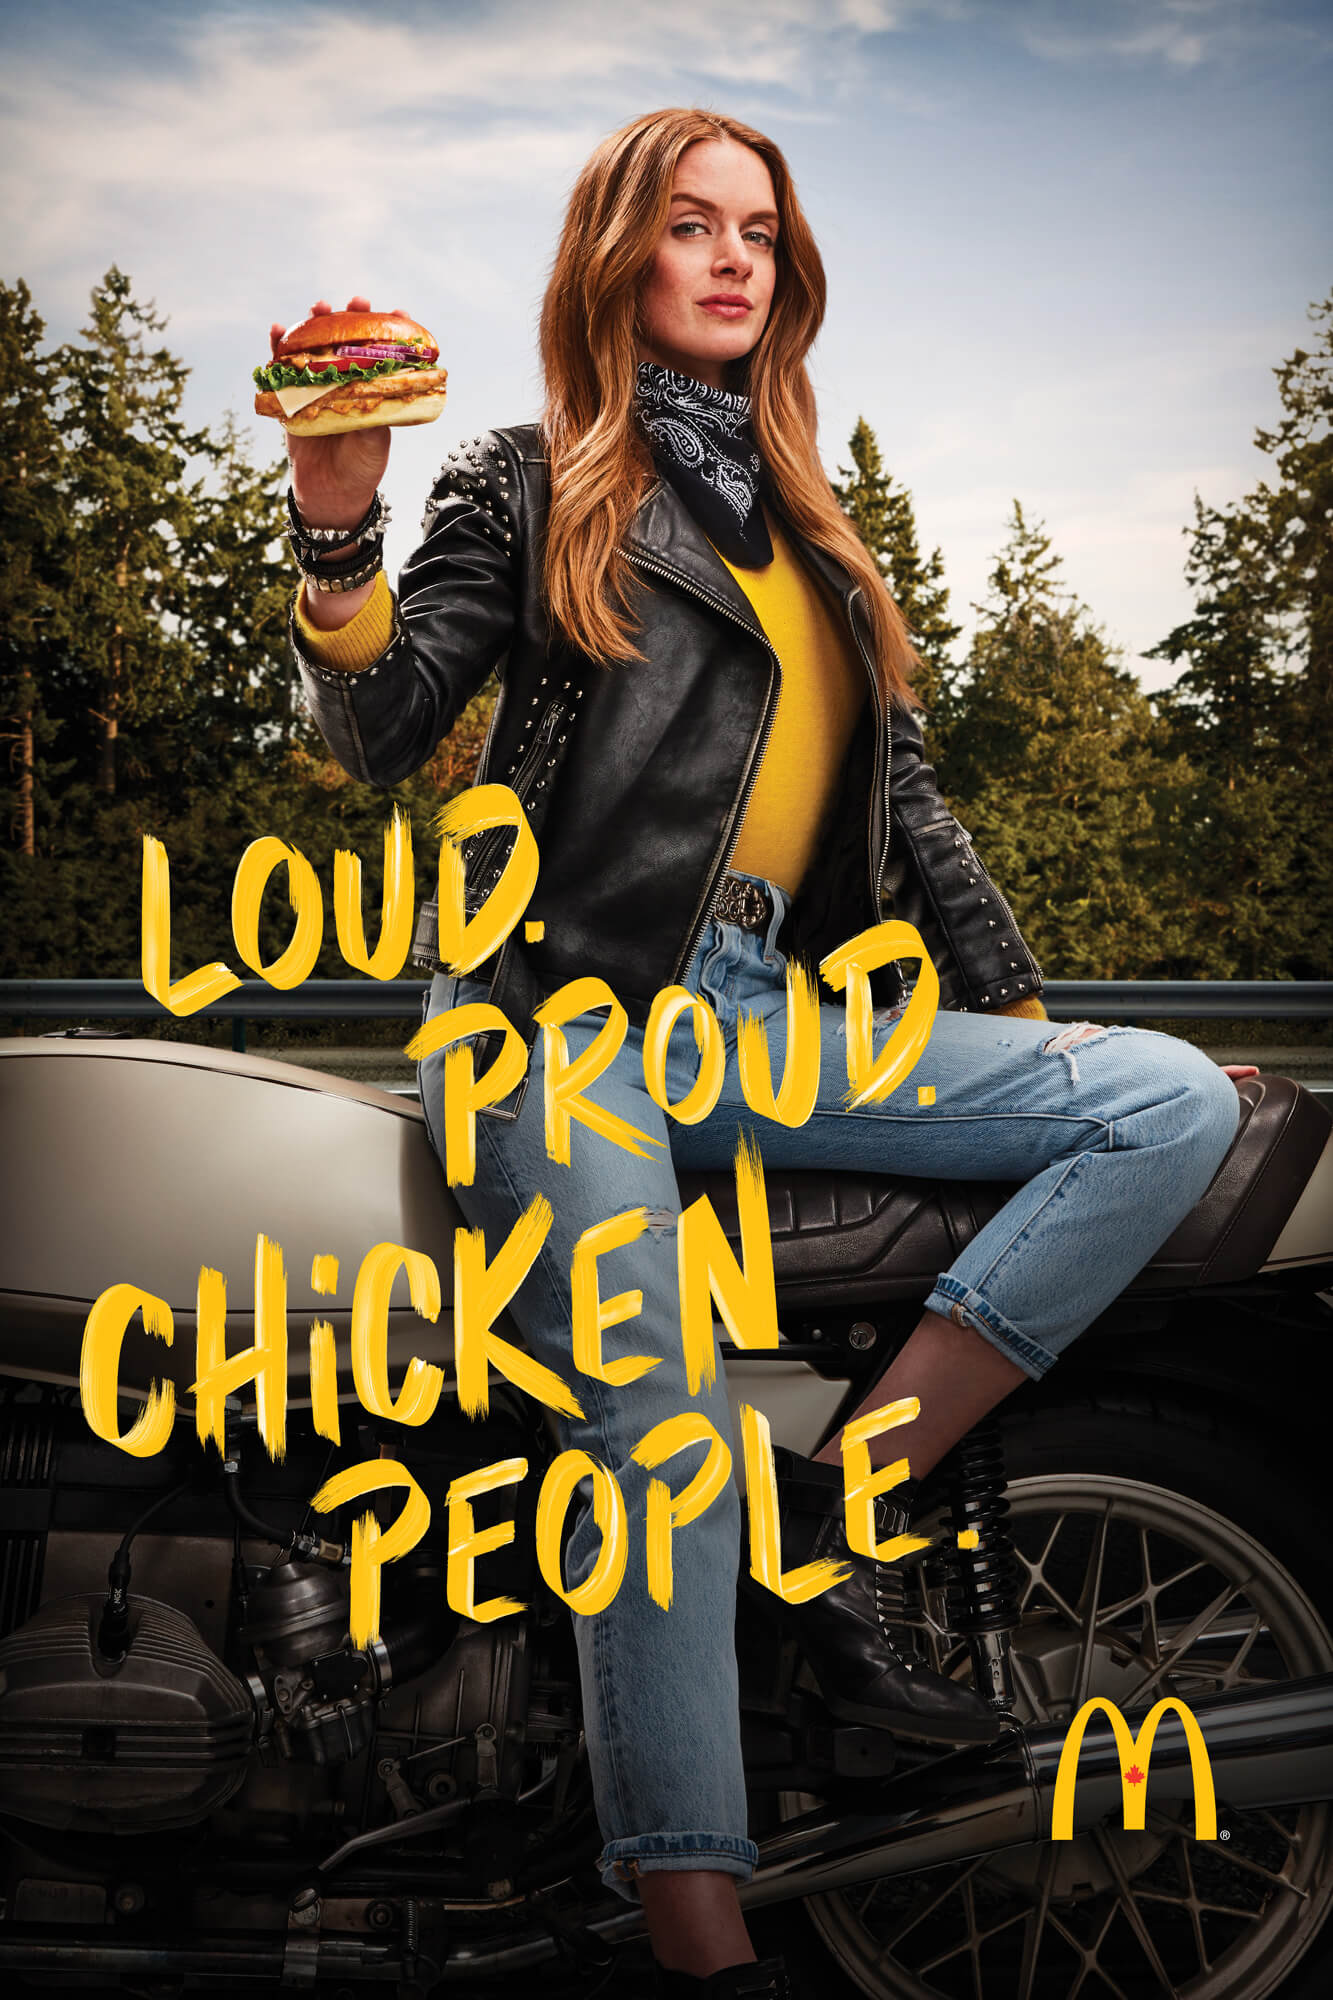 Unified Content, Unified Content Toronto, Aaron Cobb, McDonalds, Advertising, Portrait, Product, Chicken, Chicken Burger, Chicken People, Food, Product, Advertising